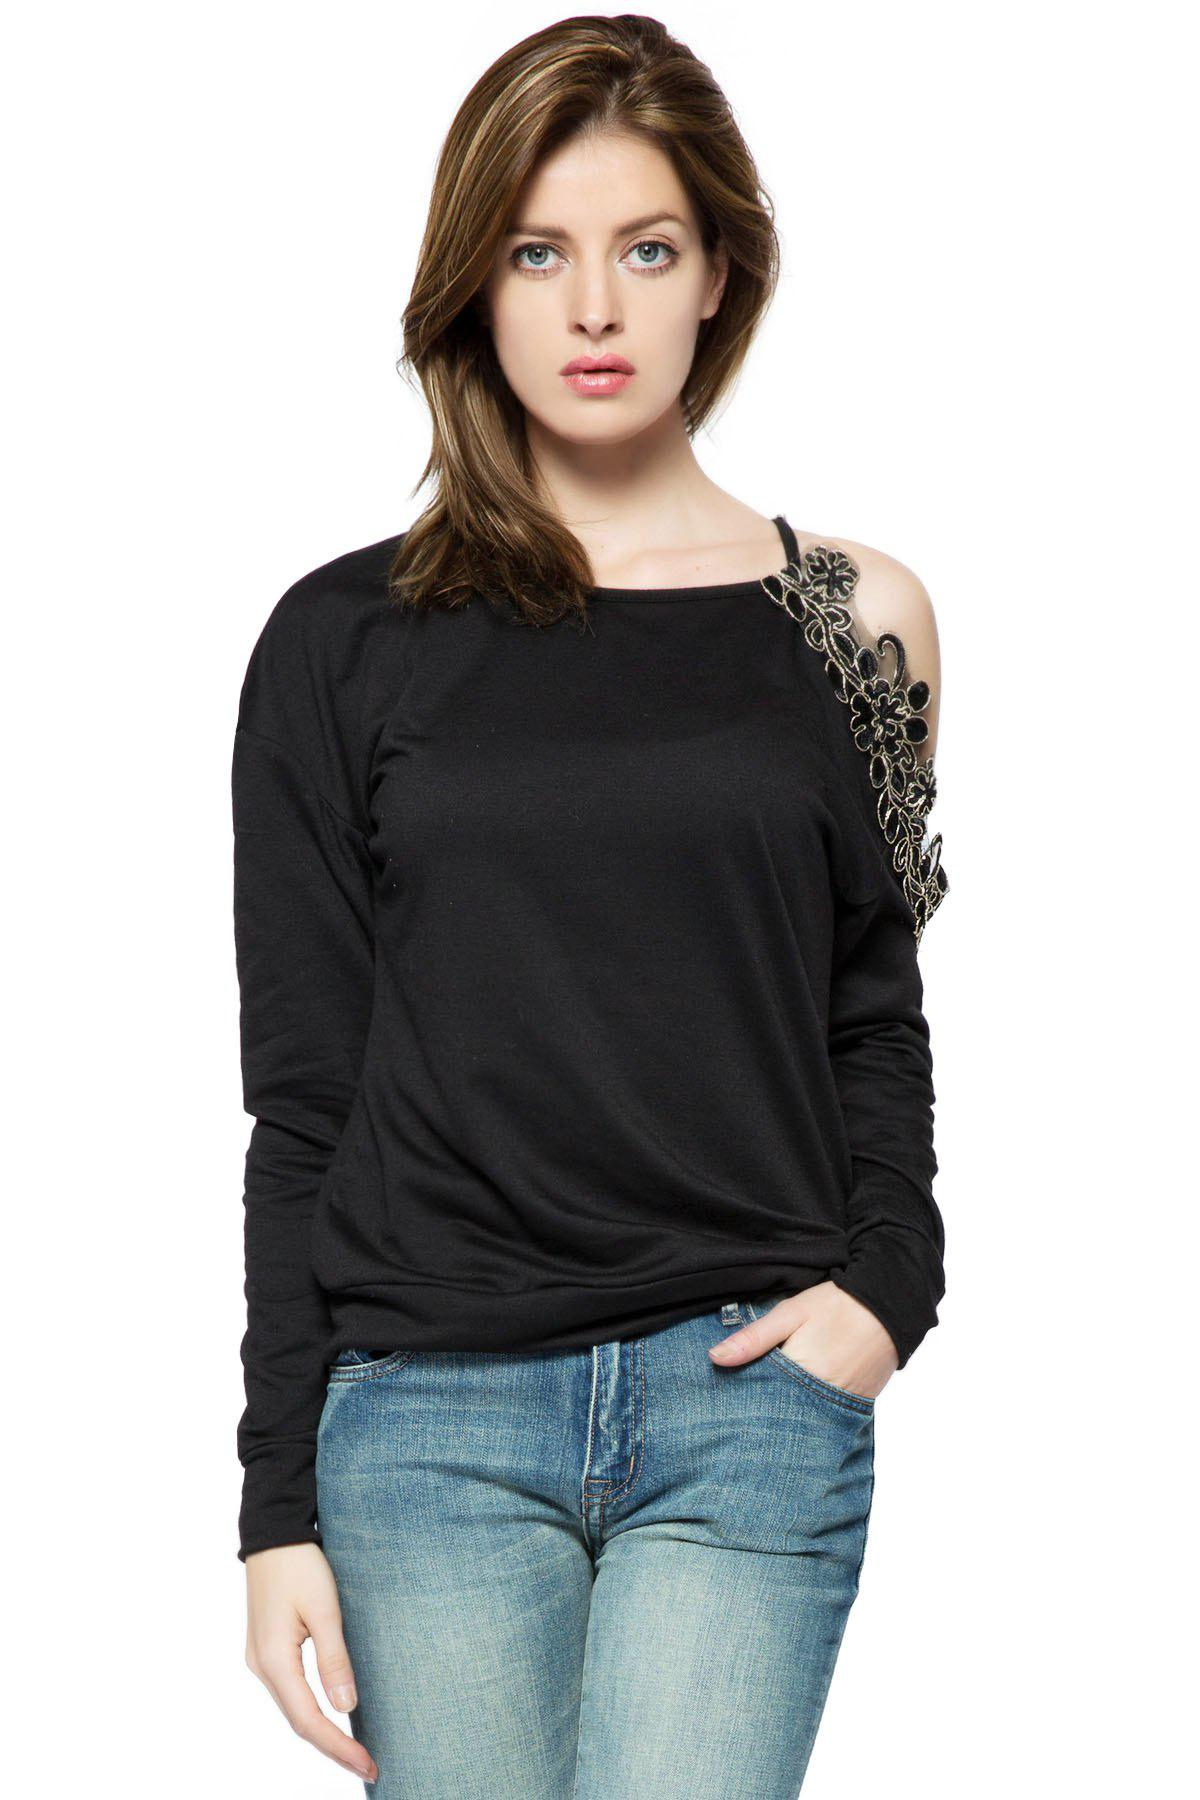 Stylish Round Collar Long Sleeve Floral Embroidery Off-The-Shoulder Women's Sweatshirt - BLACK XS